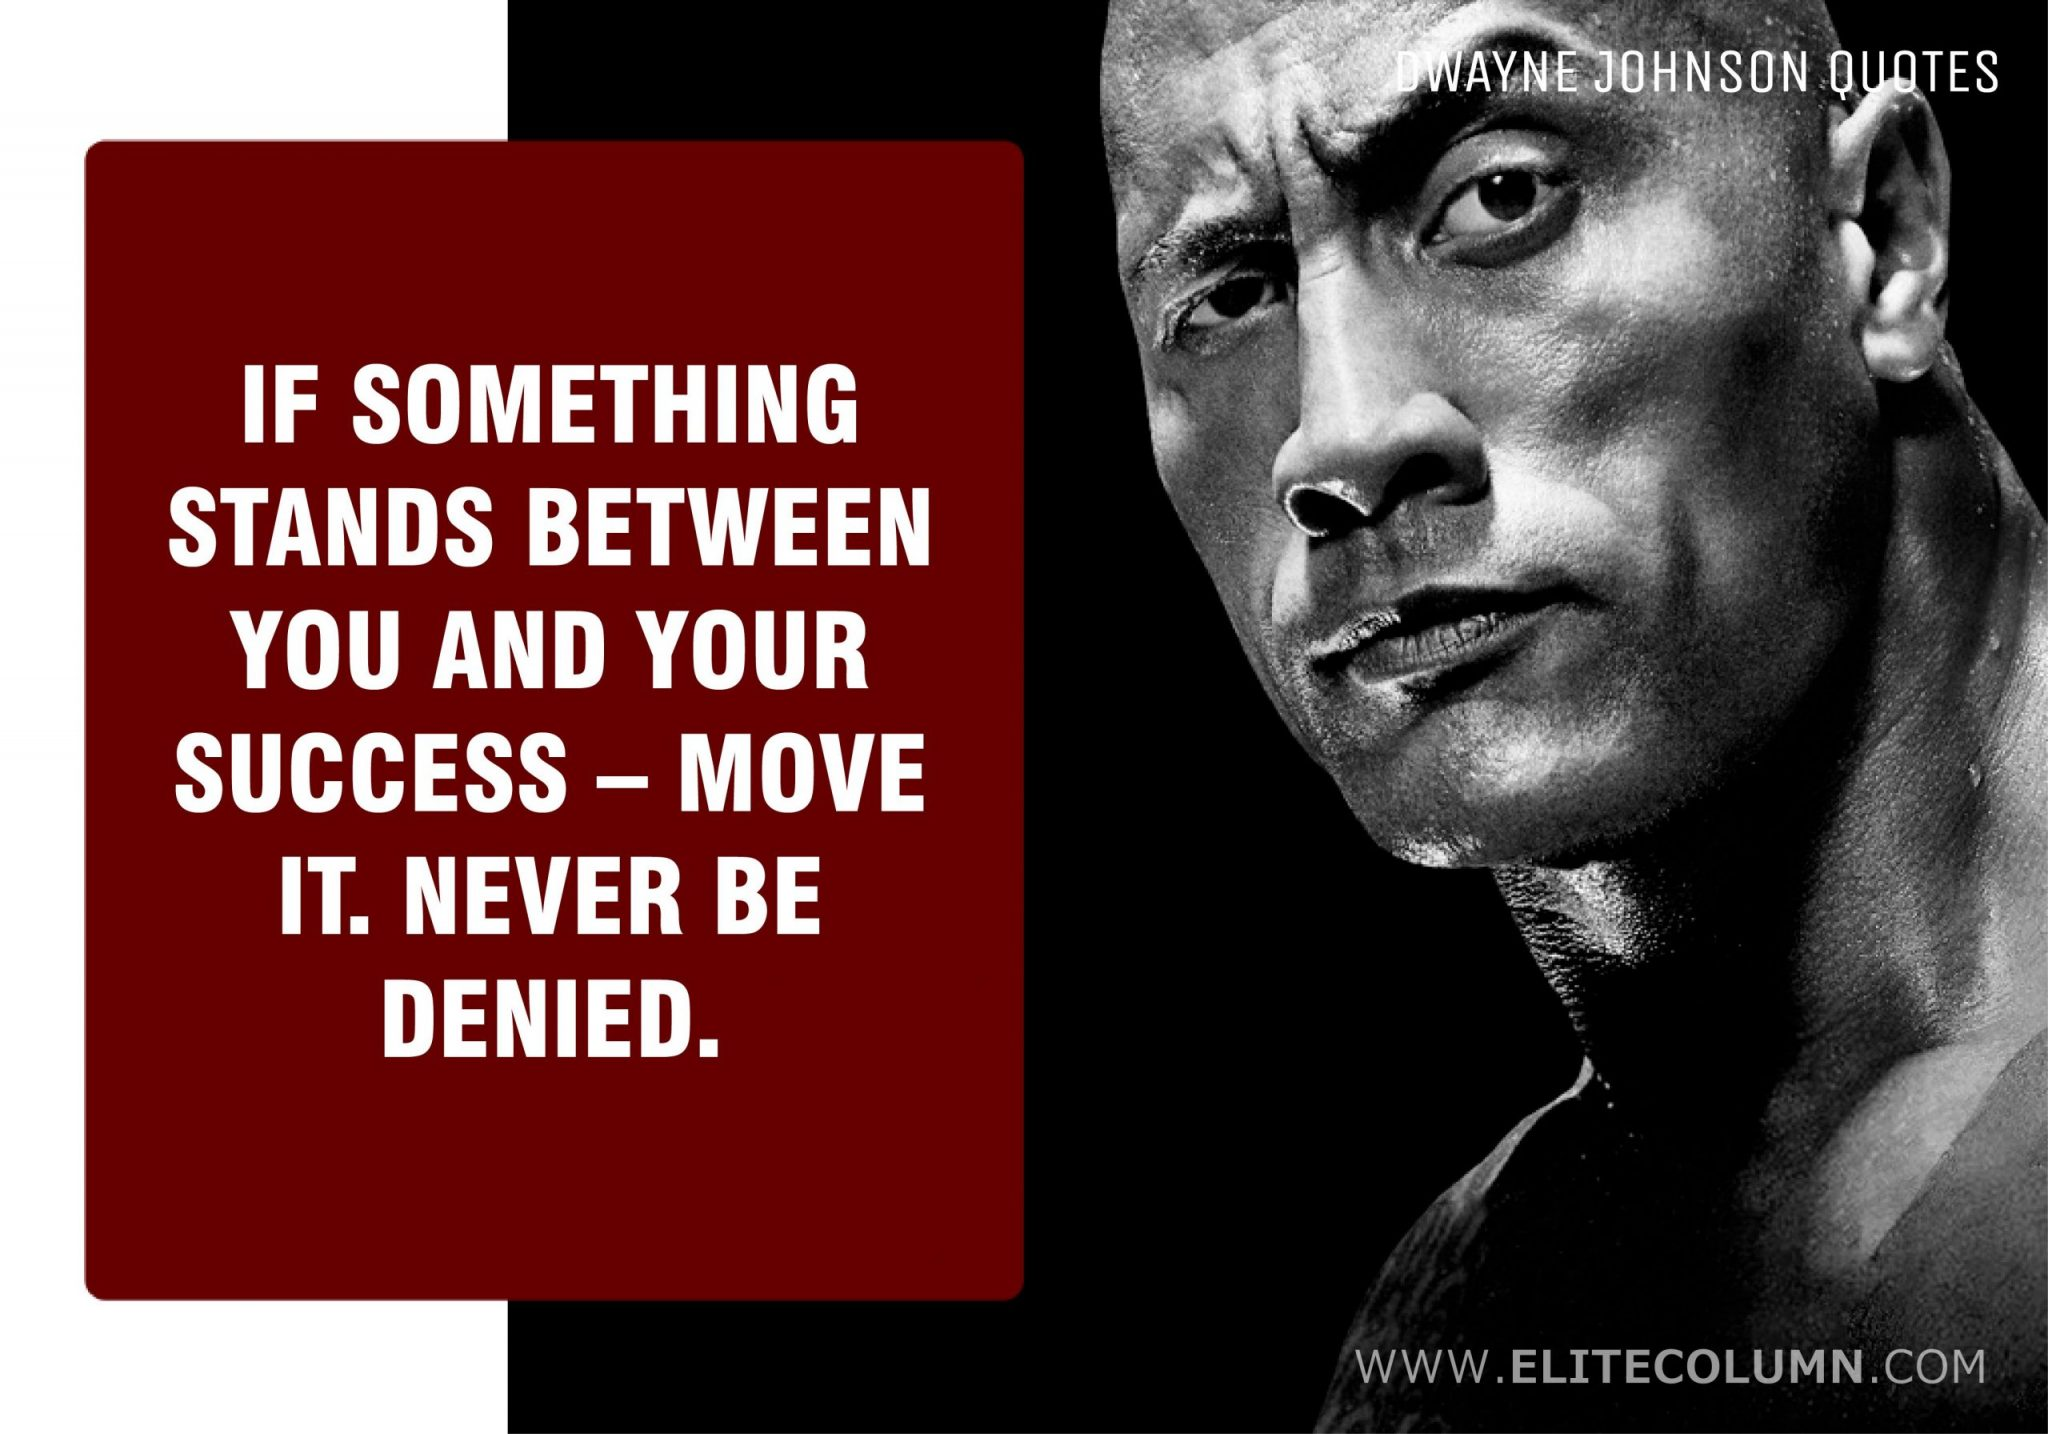 Dwayne Johnson Quotes (9)